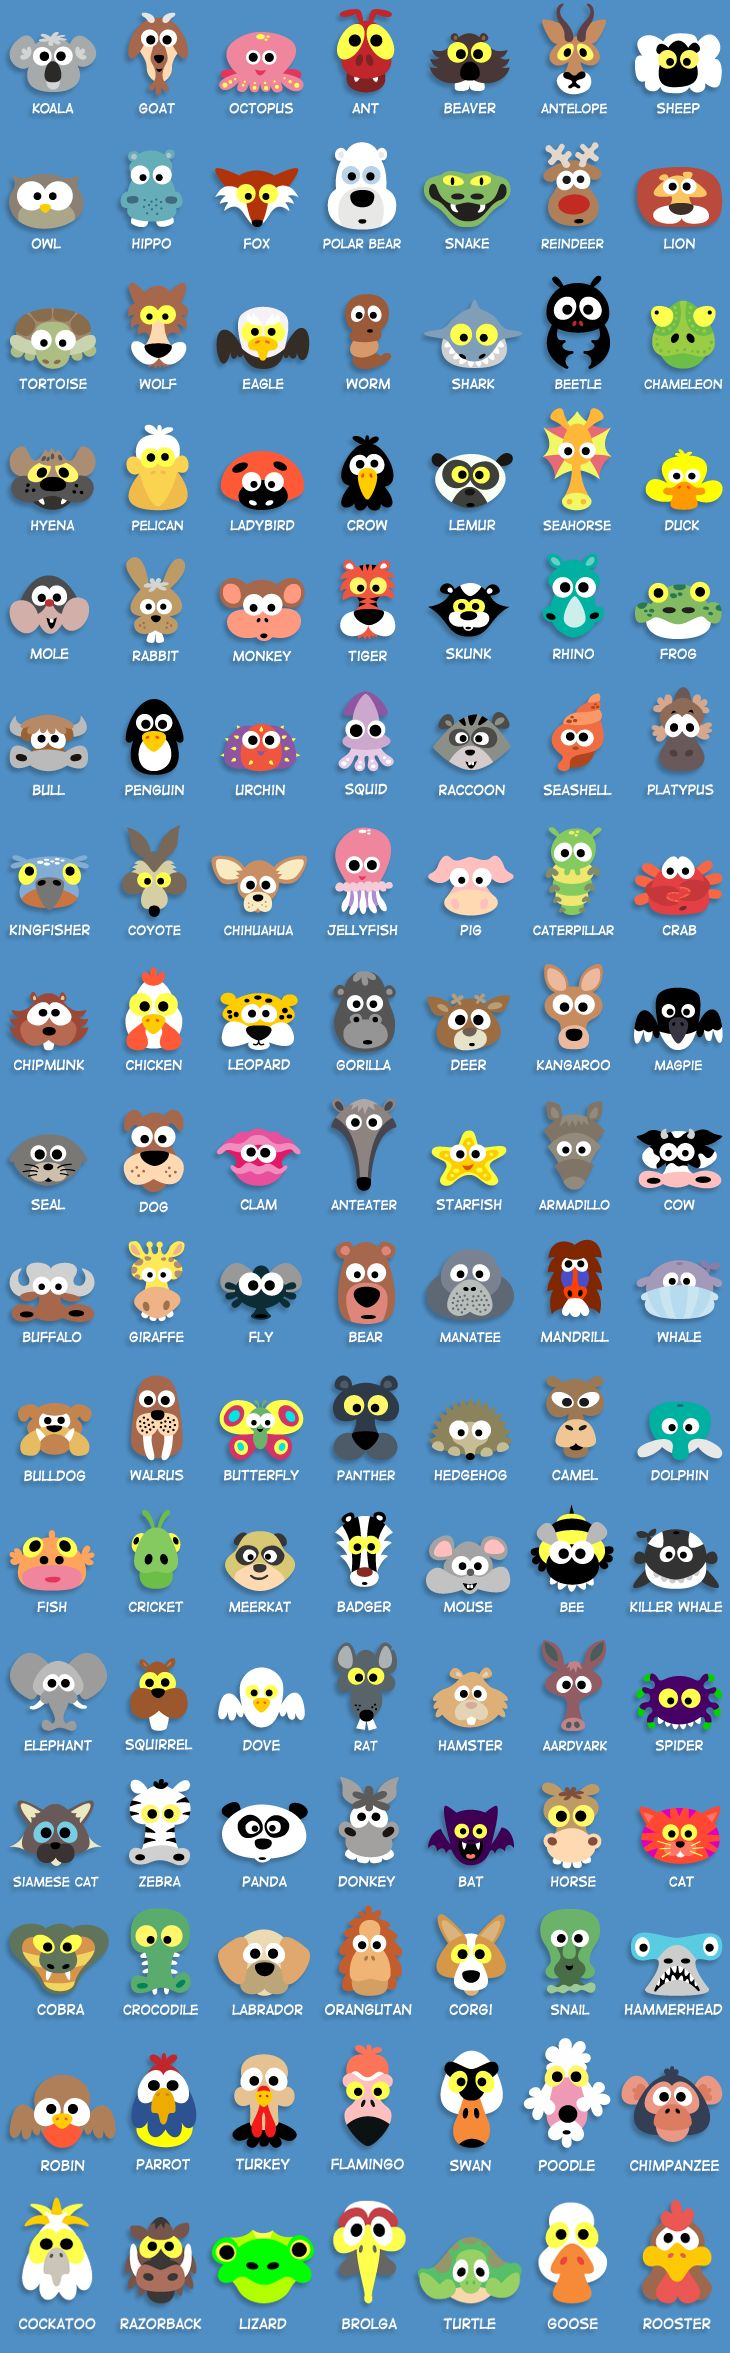 Heaps of cute printable masks from Masketeers Mask Mart!